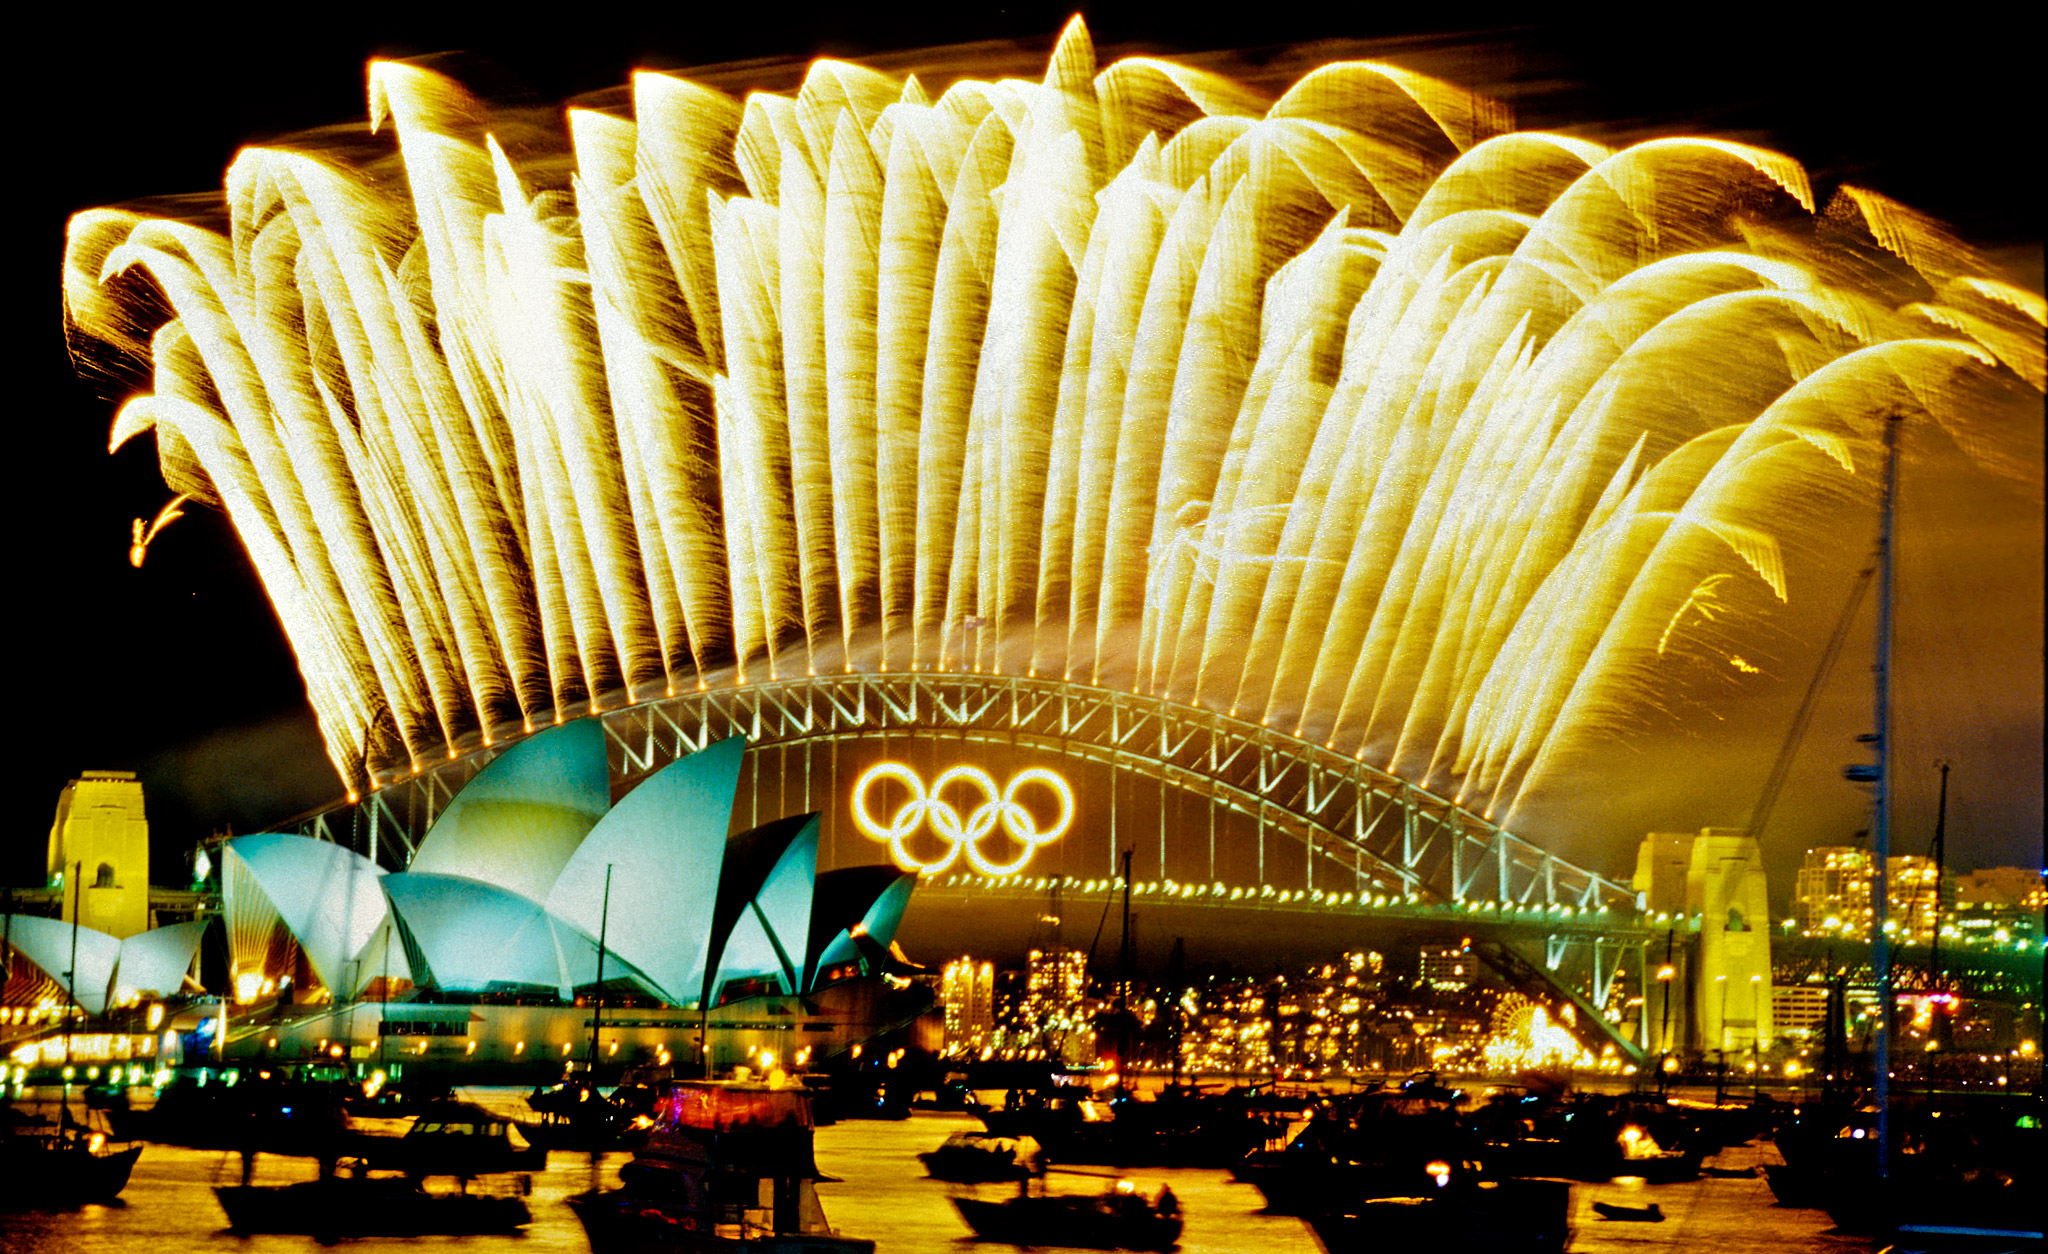 sydney 2000 closing ceremony download itunes - photo#21